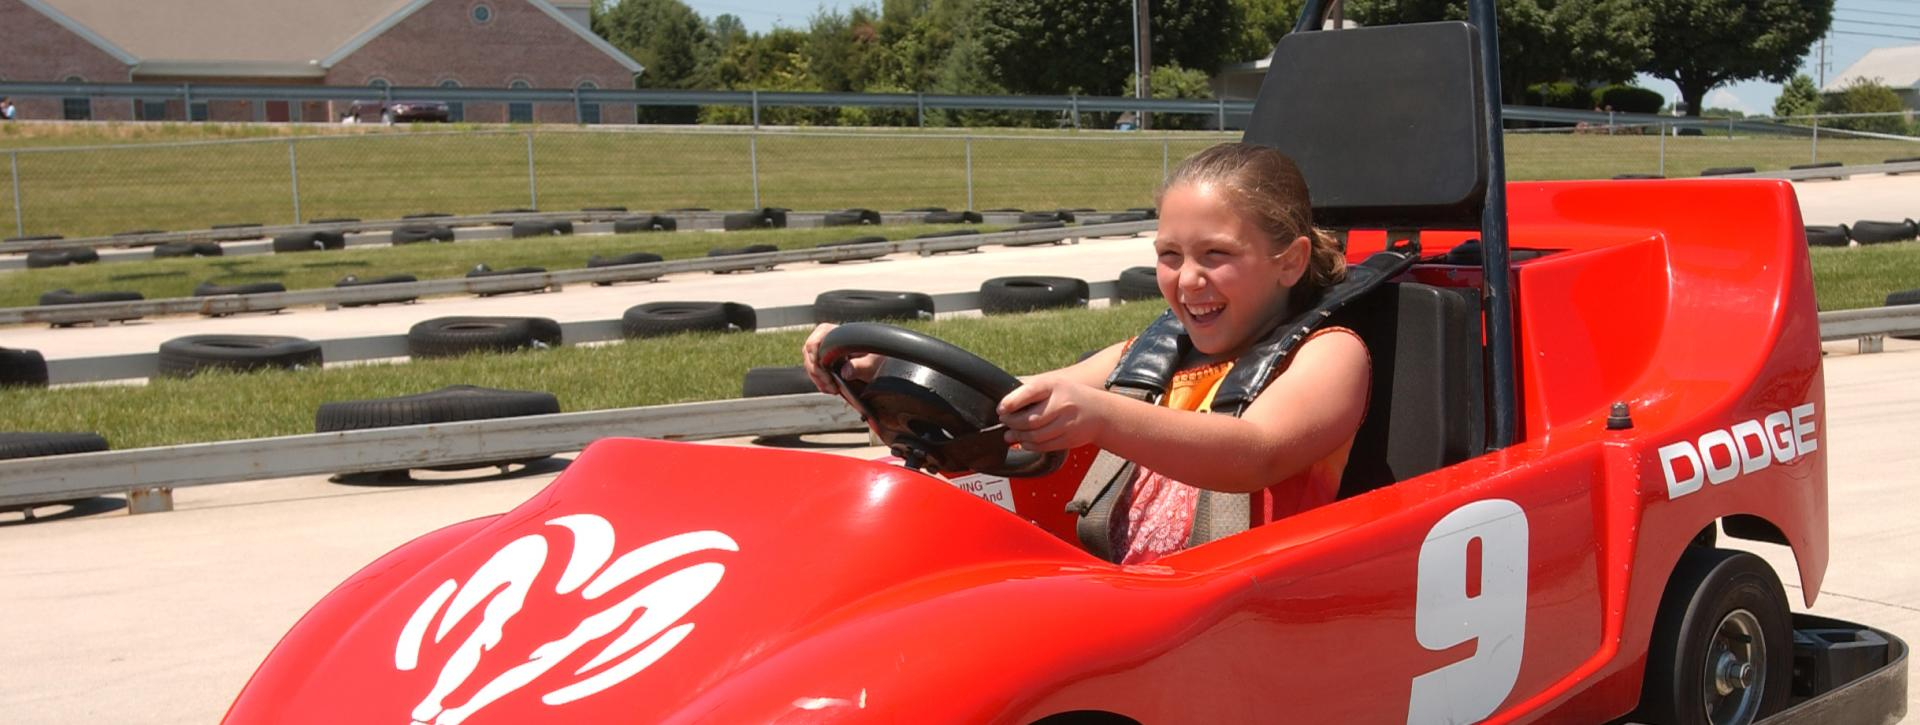 adventure-sports-hershey-gokarts